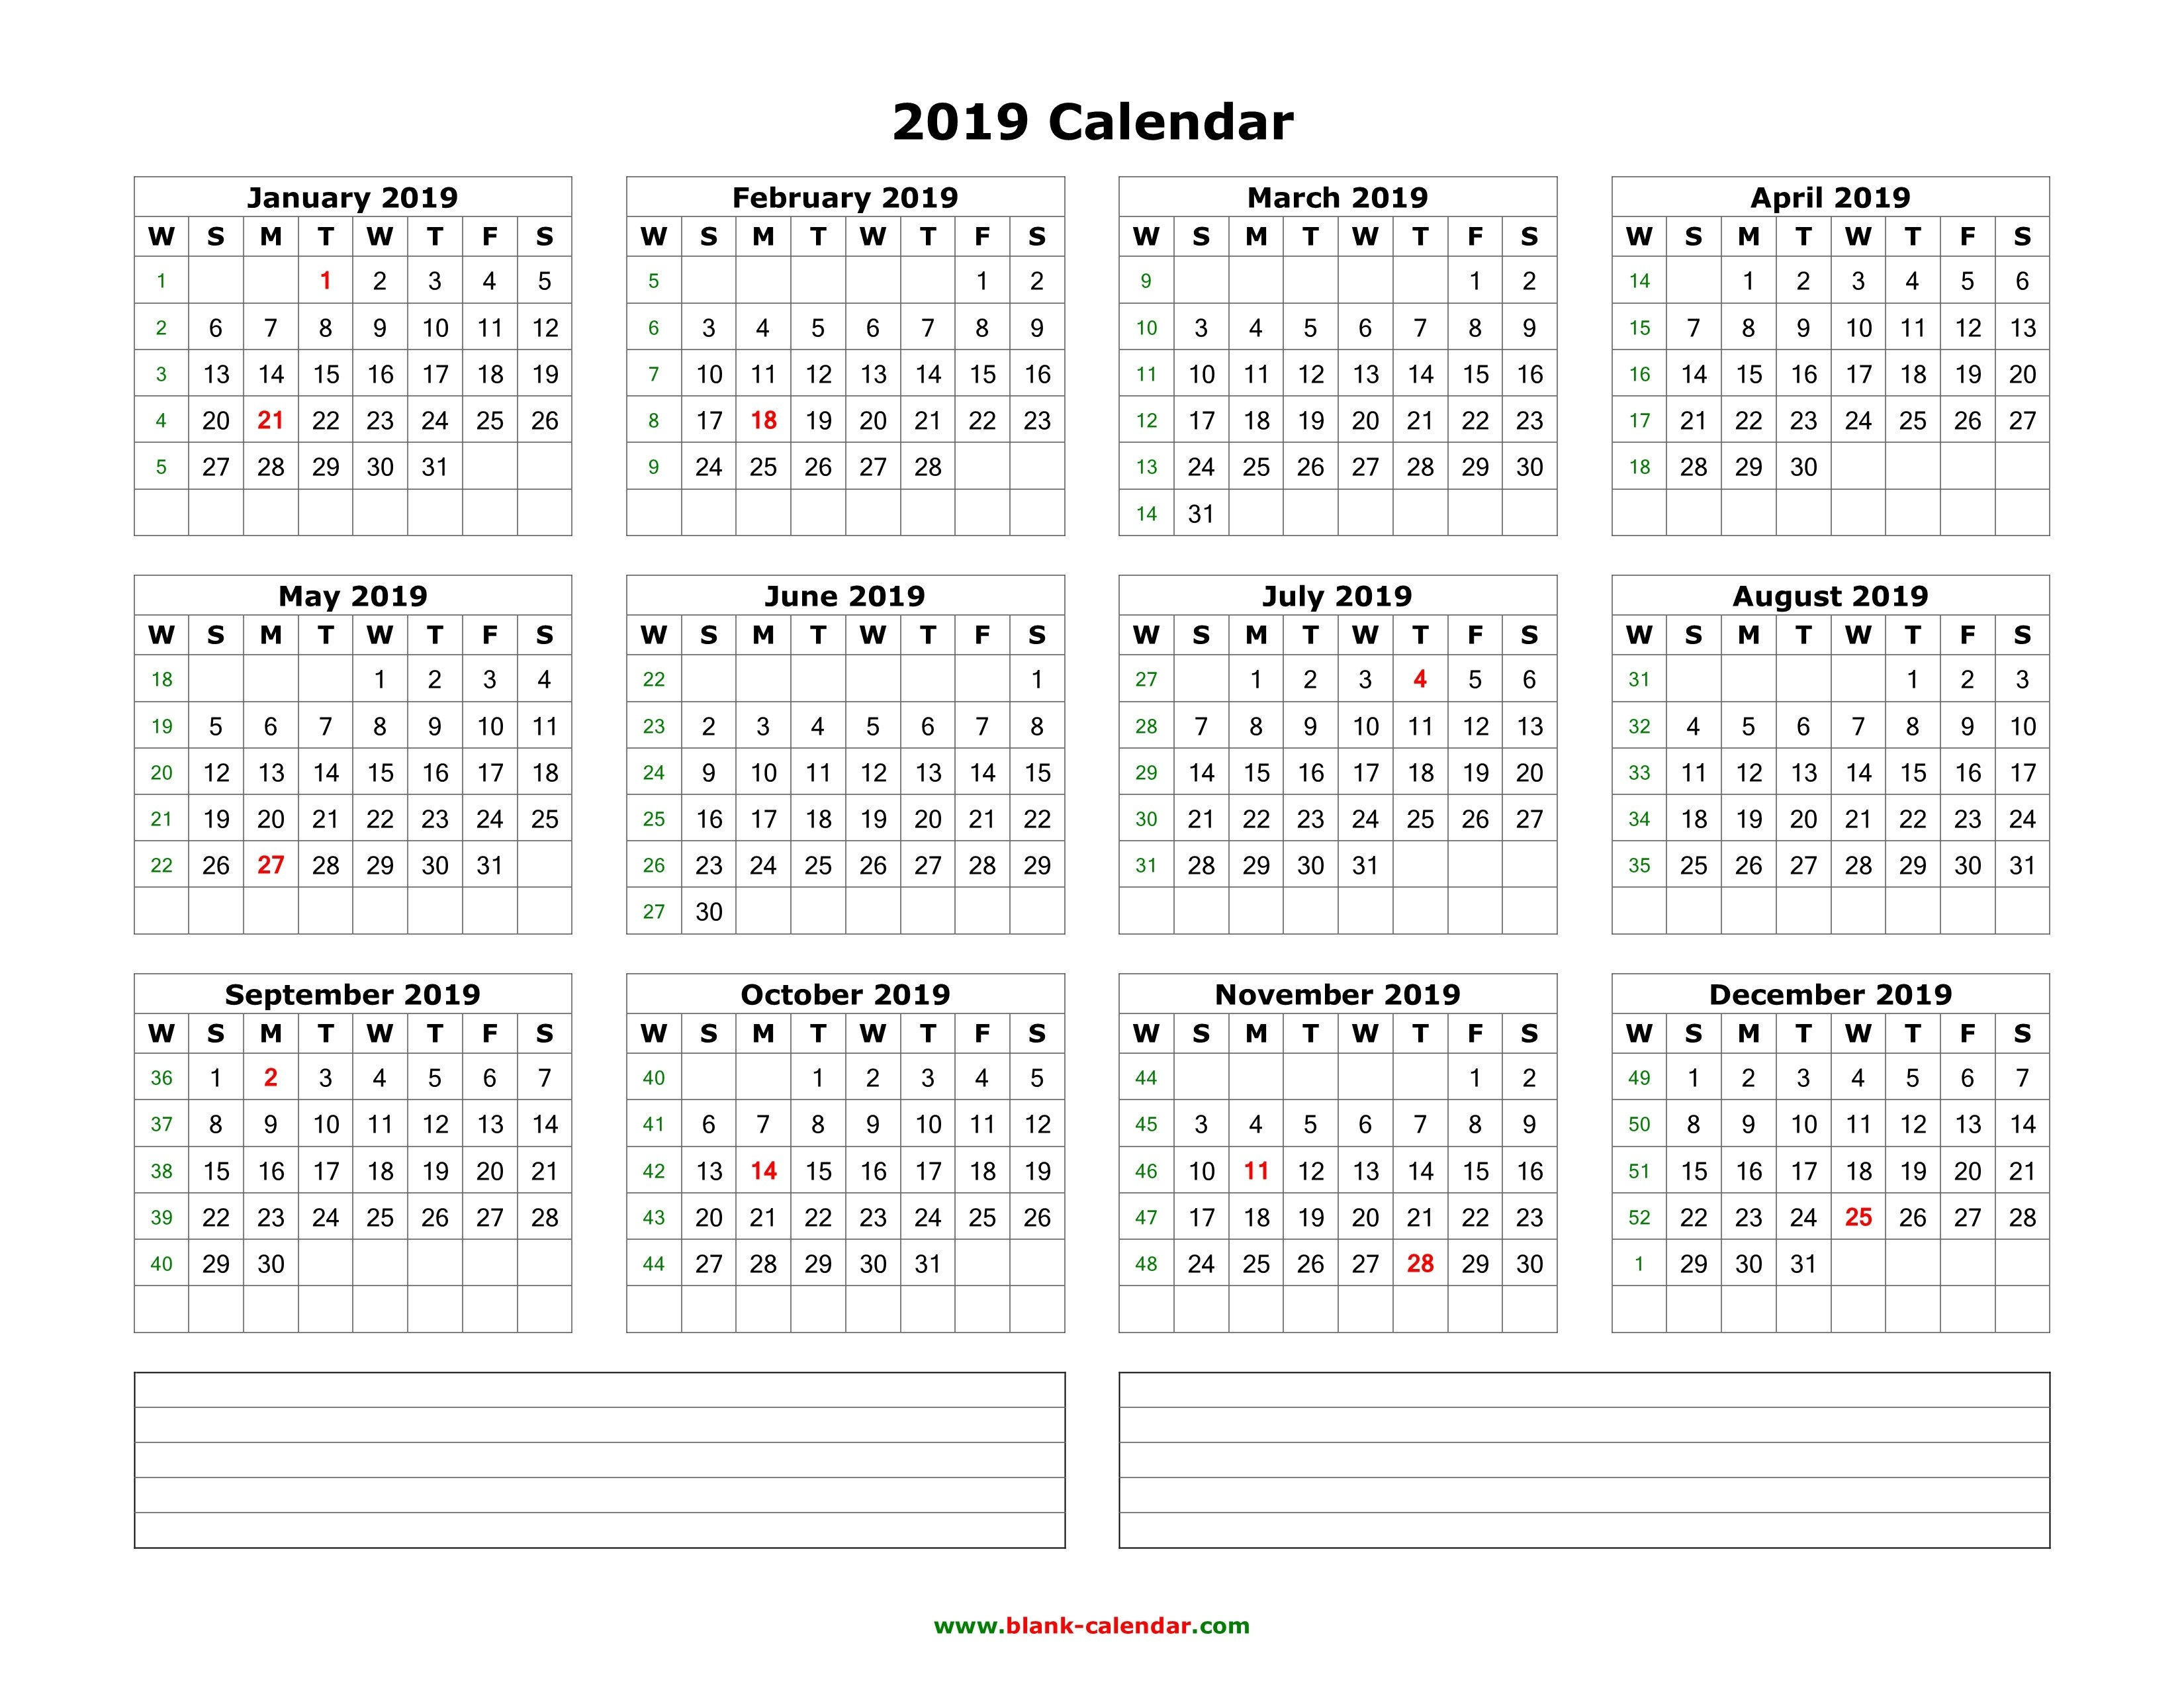 Download Blank Calendar 2019 With Space For Notes (12 Months On One Calendar 2019 All Months